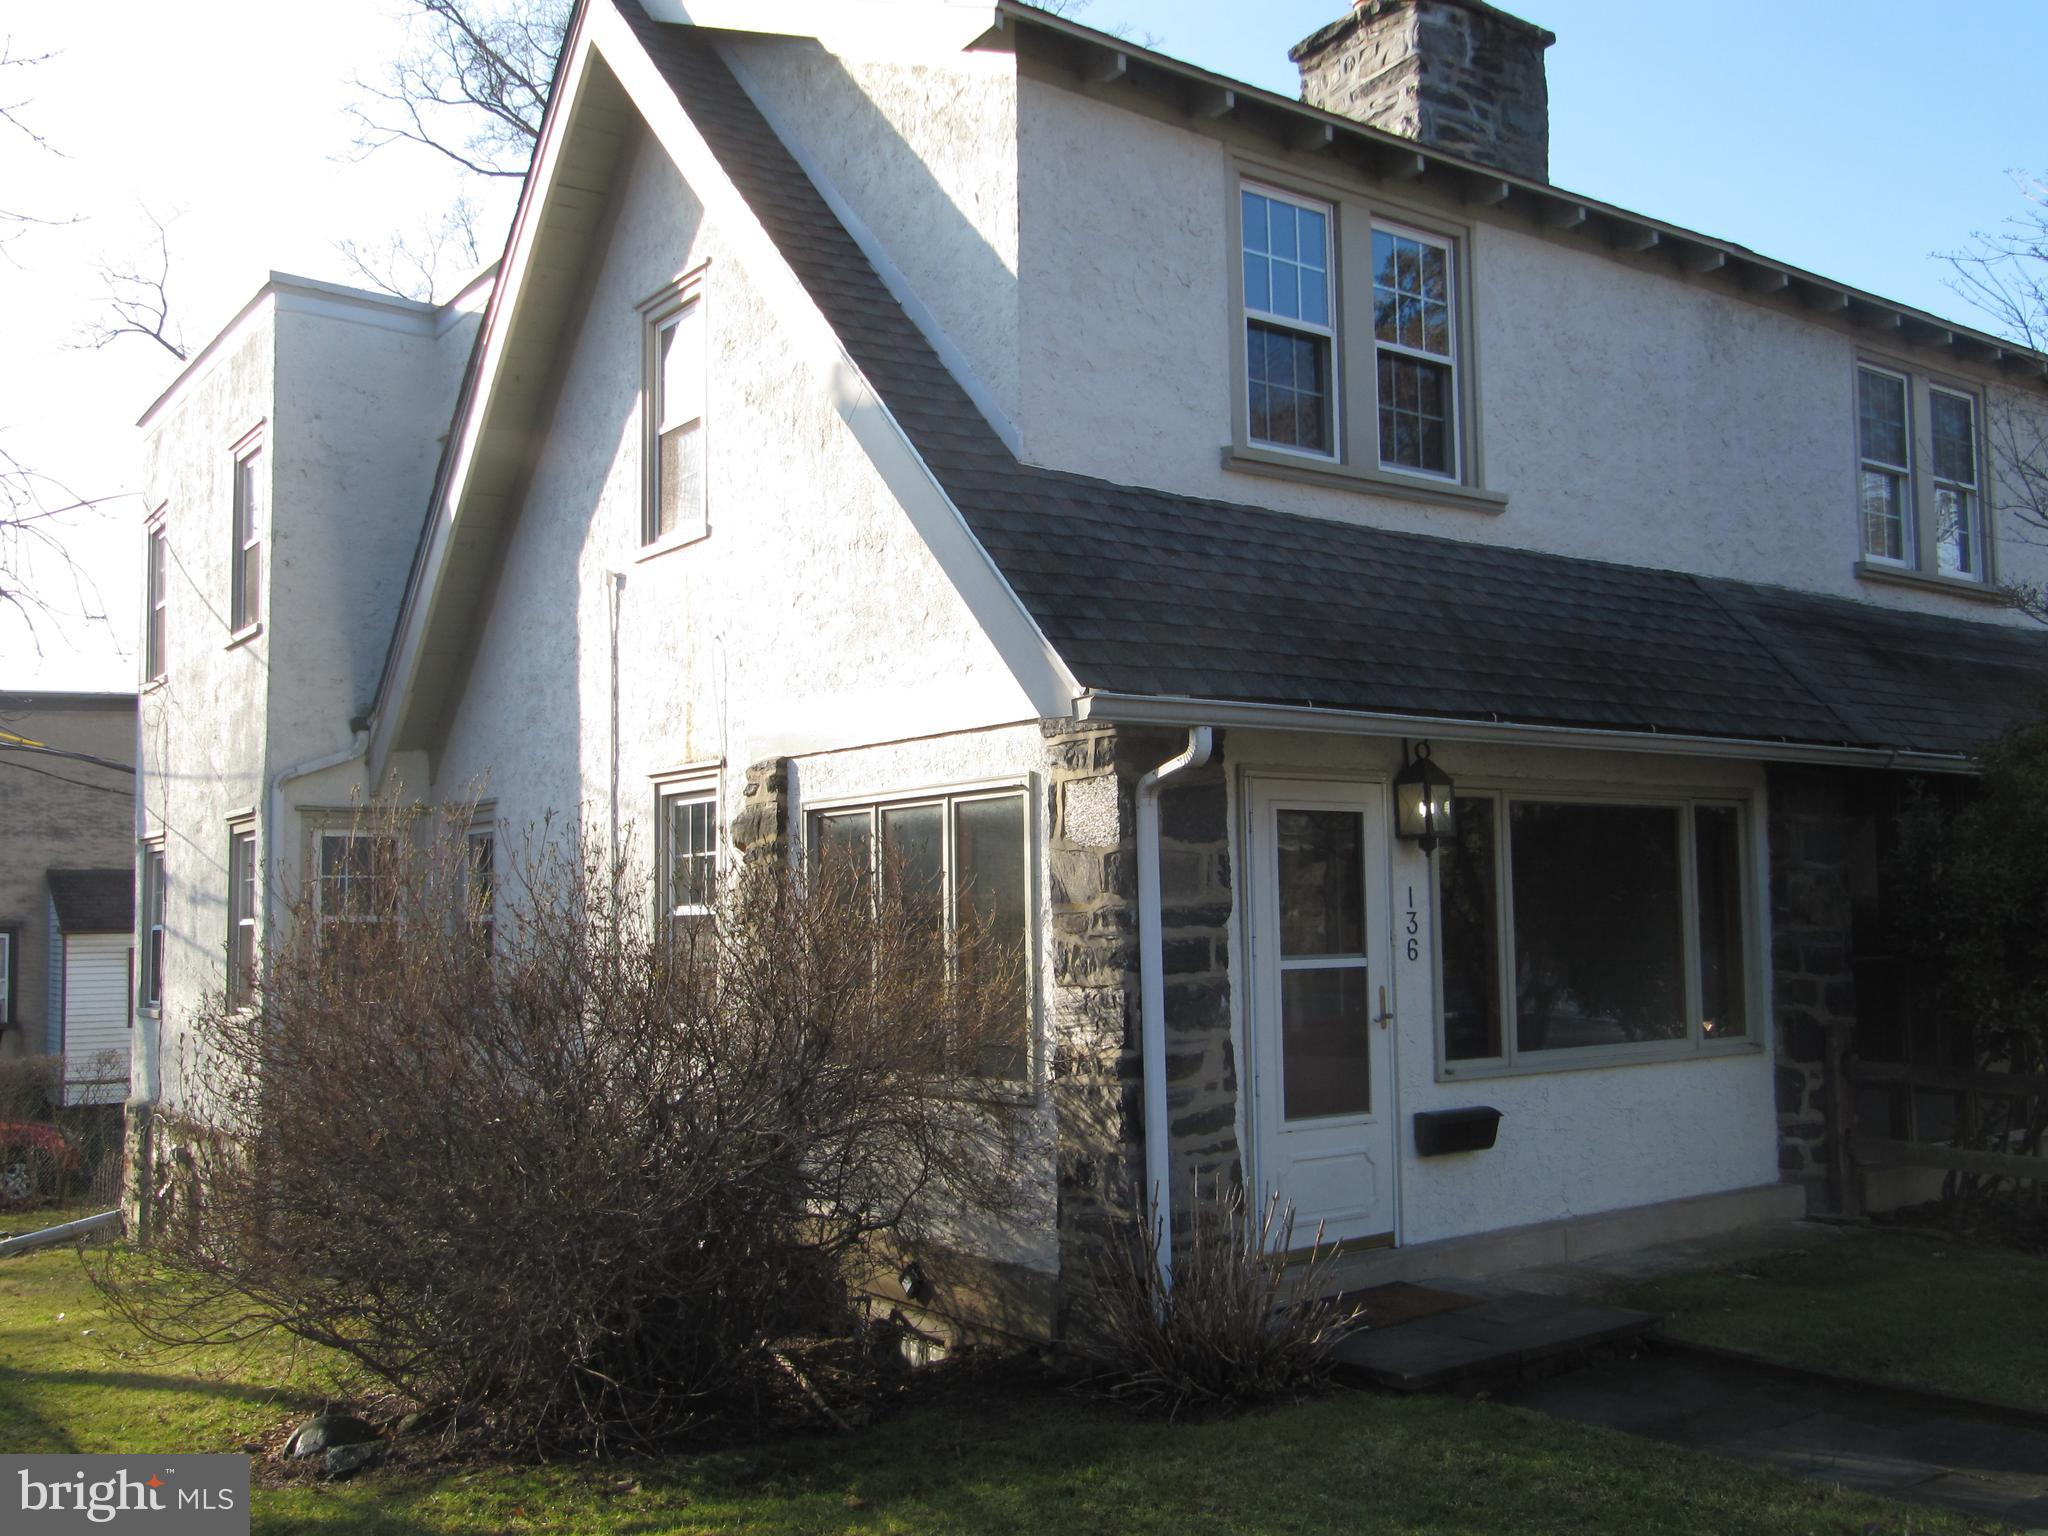 136 WINCHESTER ROAD, MERION STATION, PA 19066